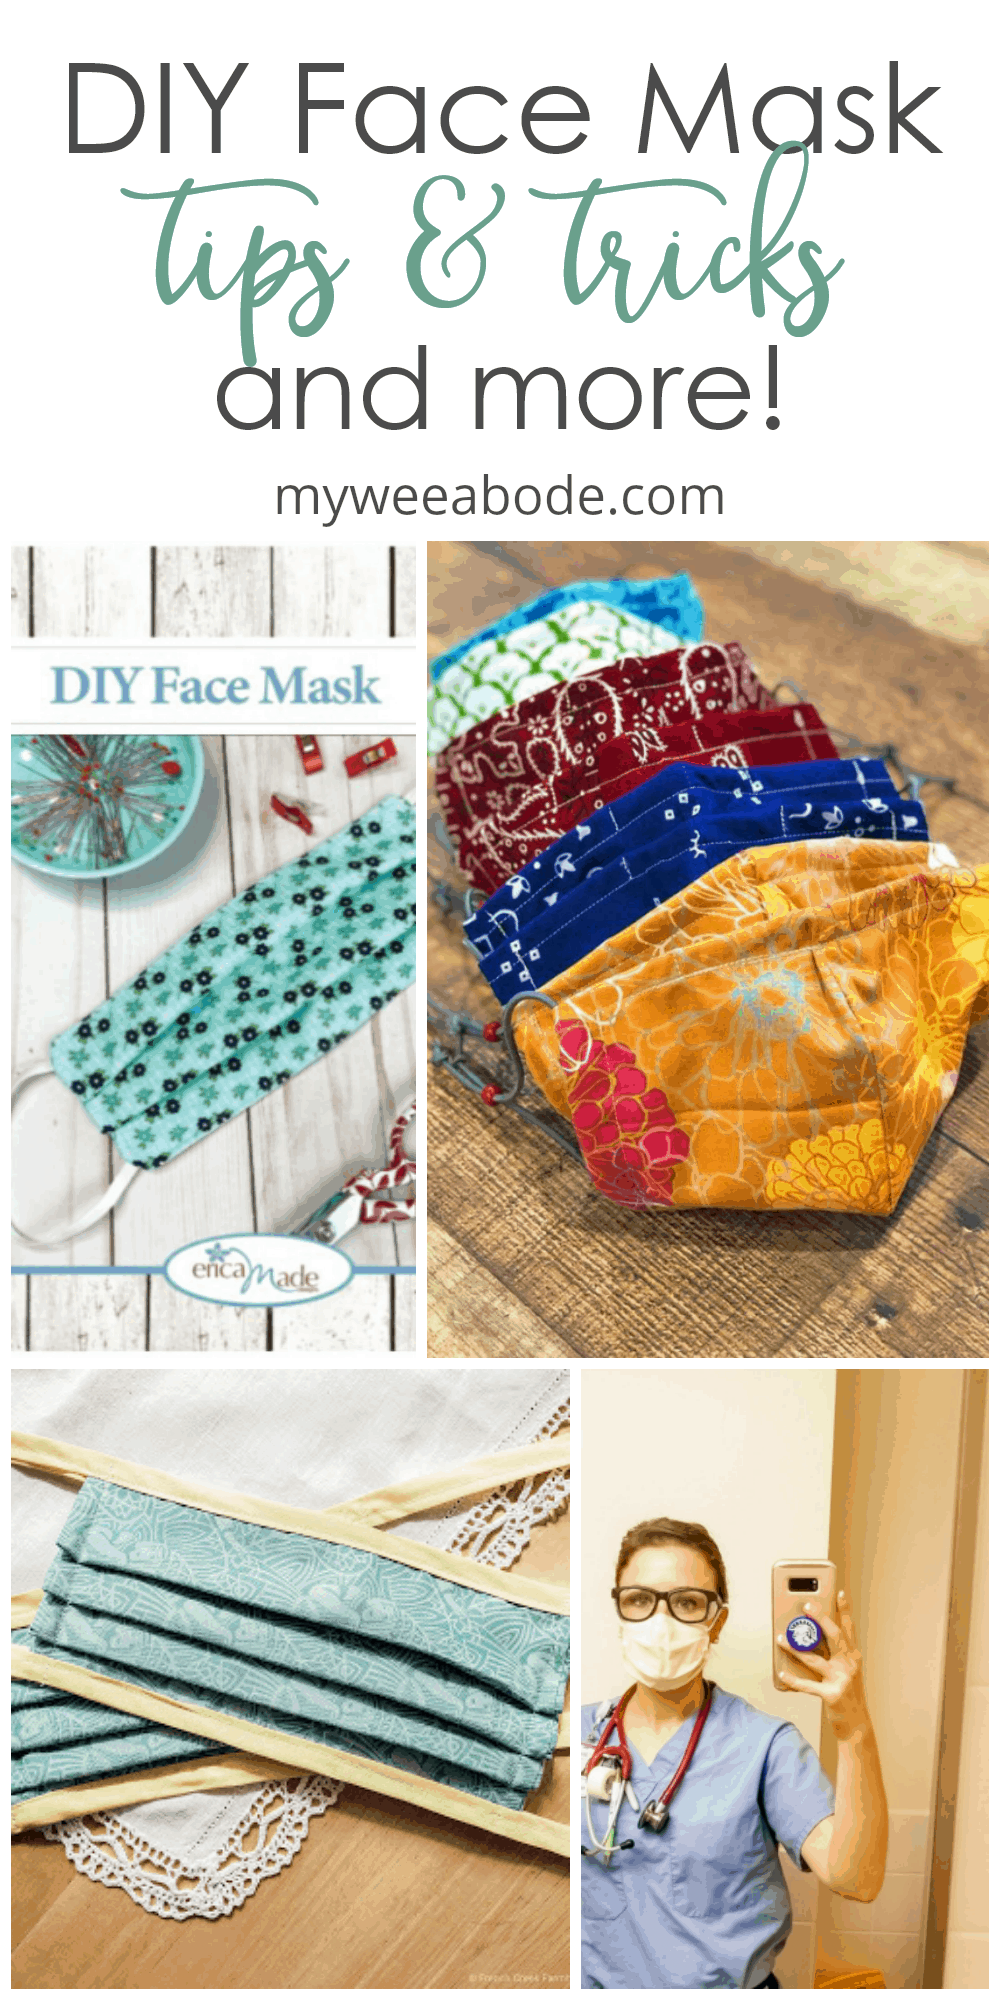 diy face mask tips green face mask on table